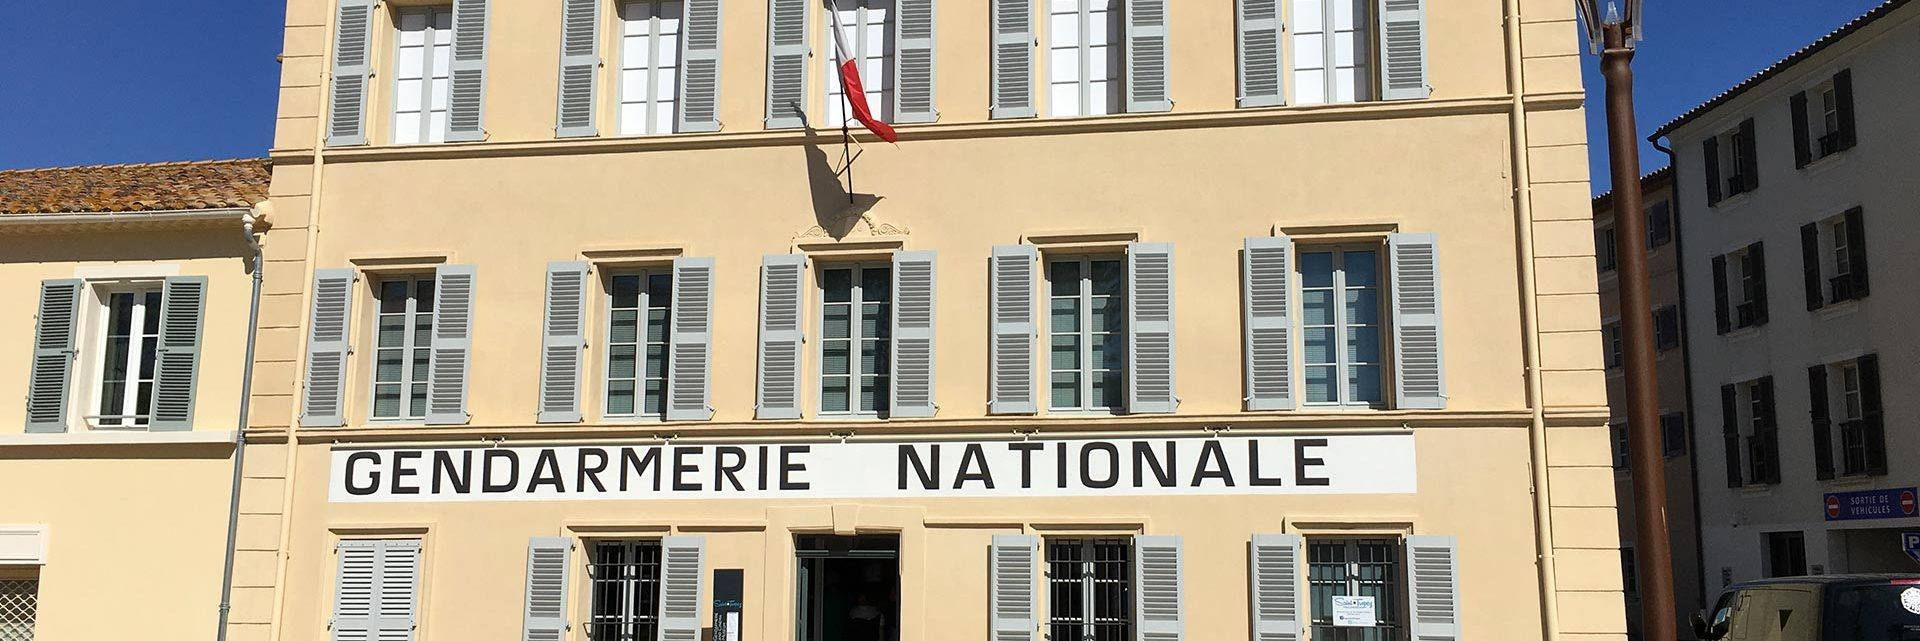 The Gendarmerie and Cinema Museum in Saint Tropez